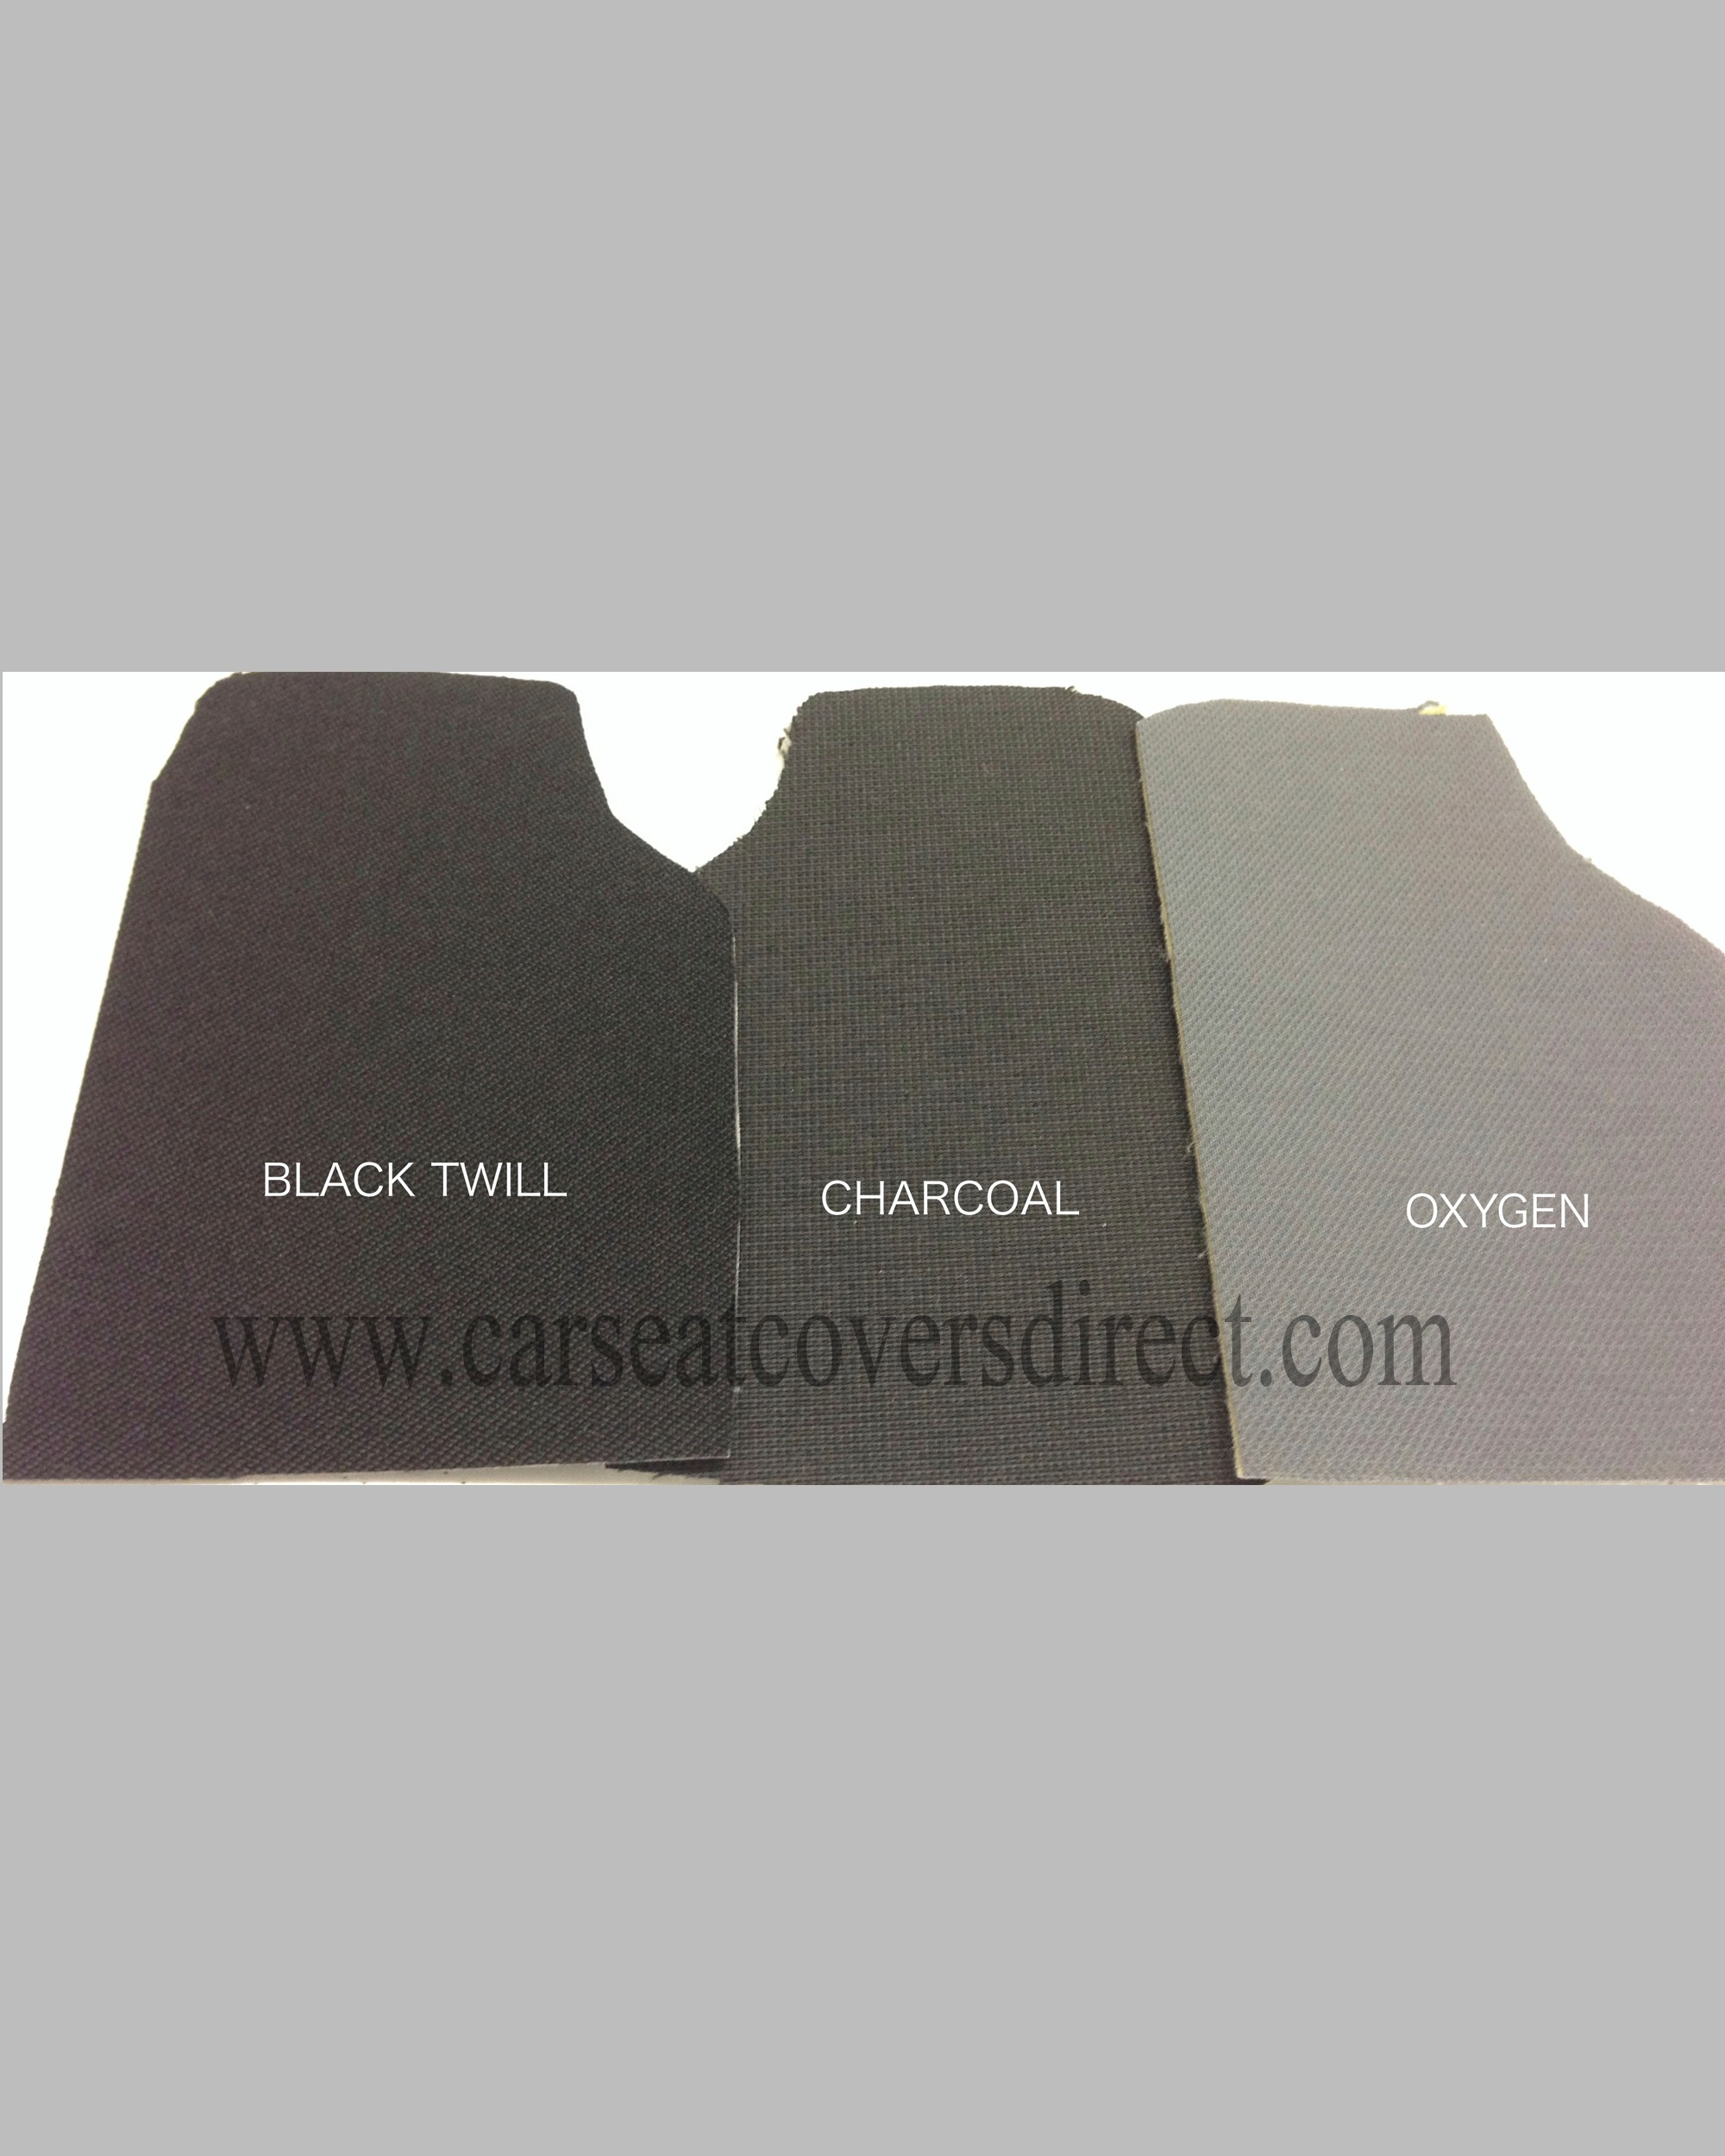 Black twill, Charcoal and Oxygen